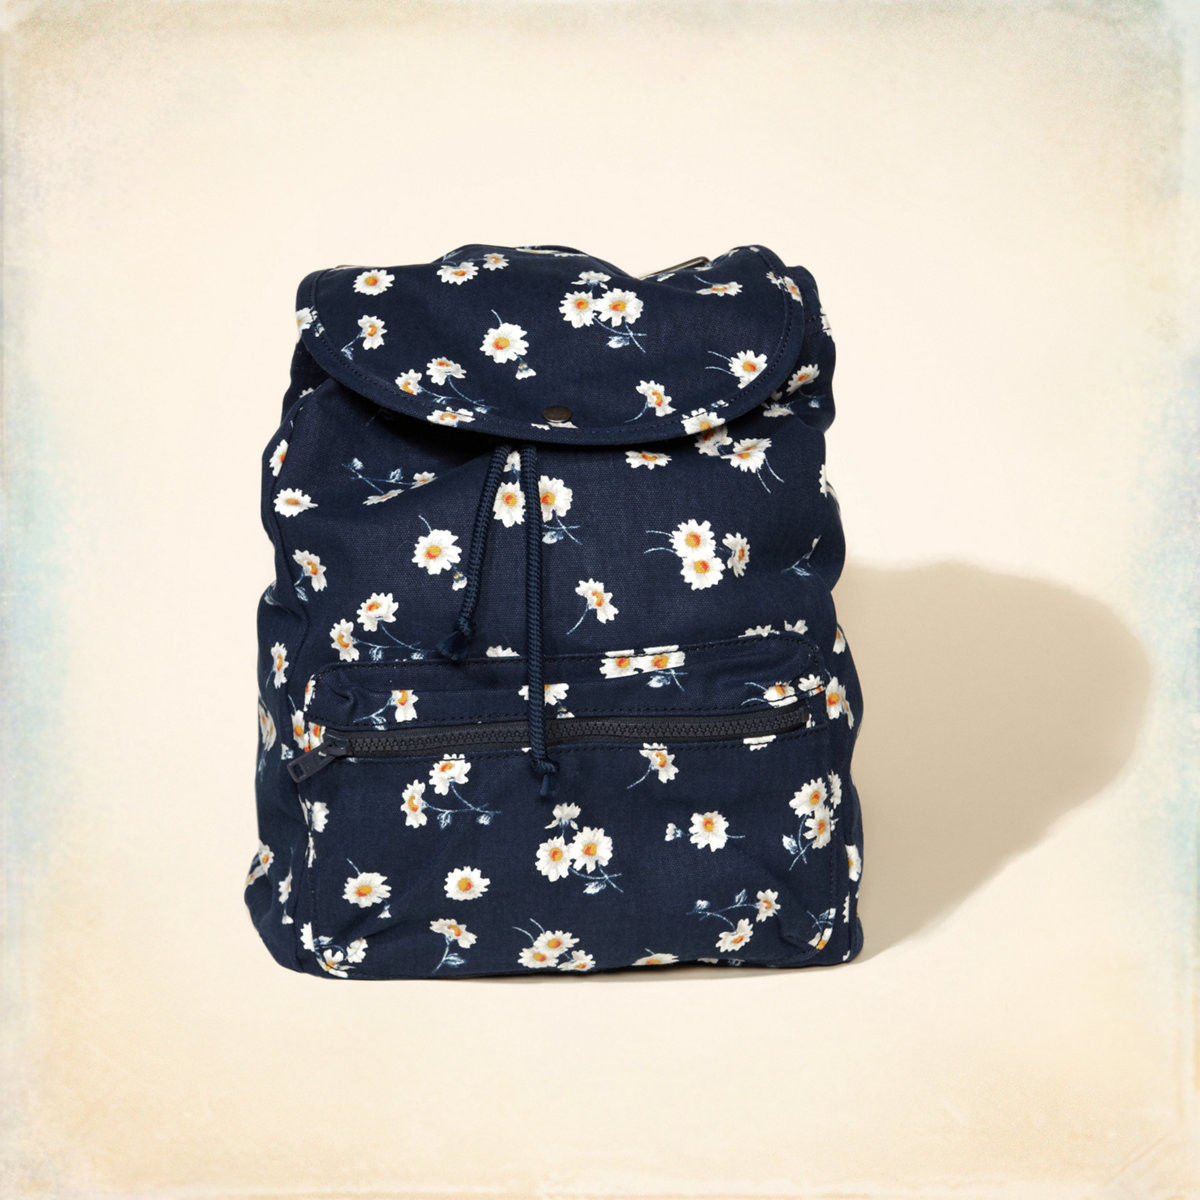 navy blue floral backpack